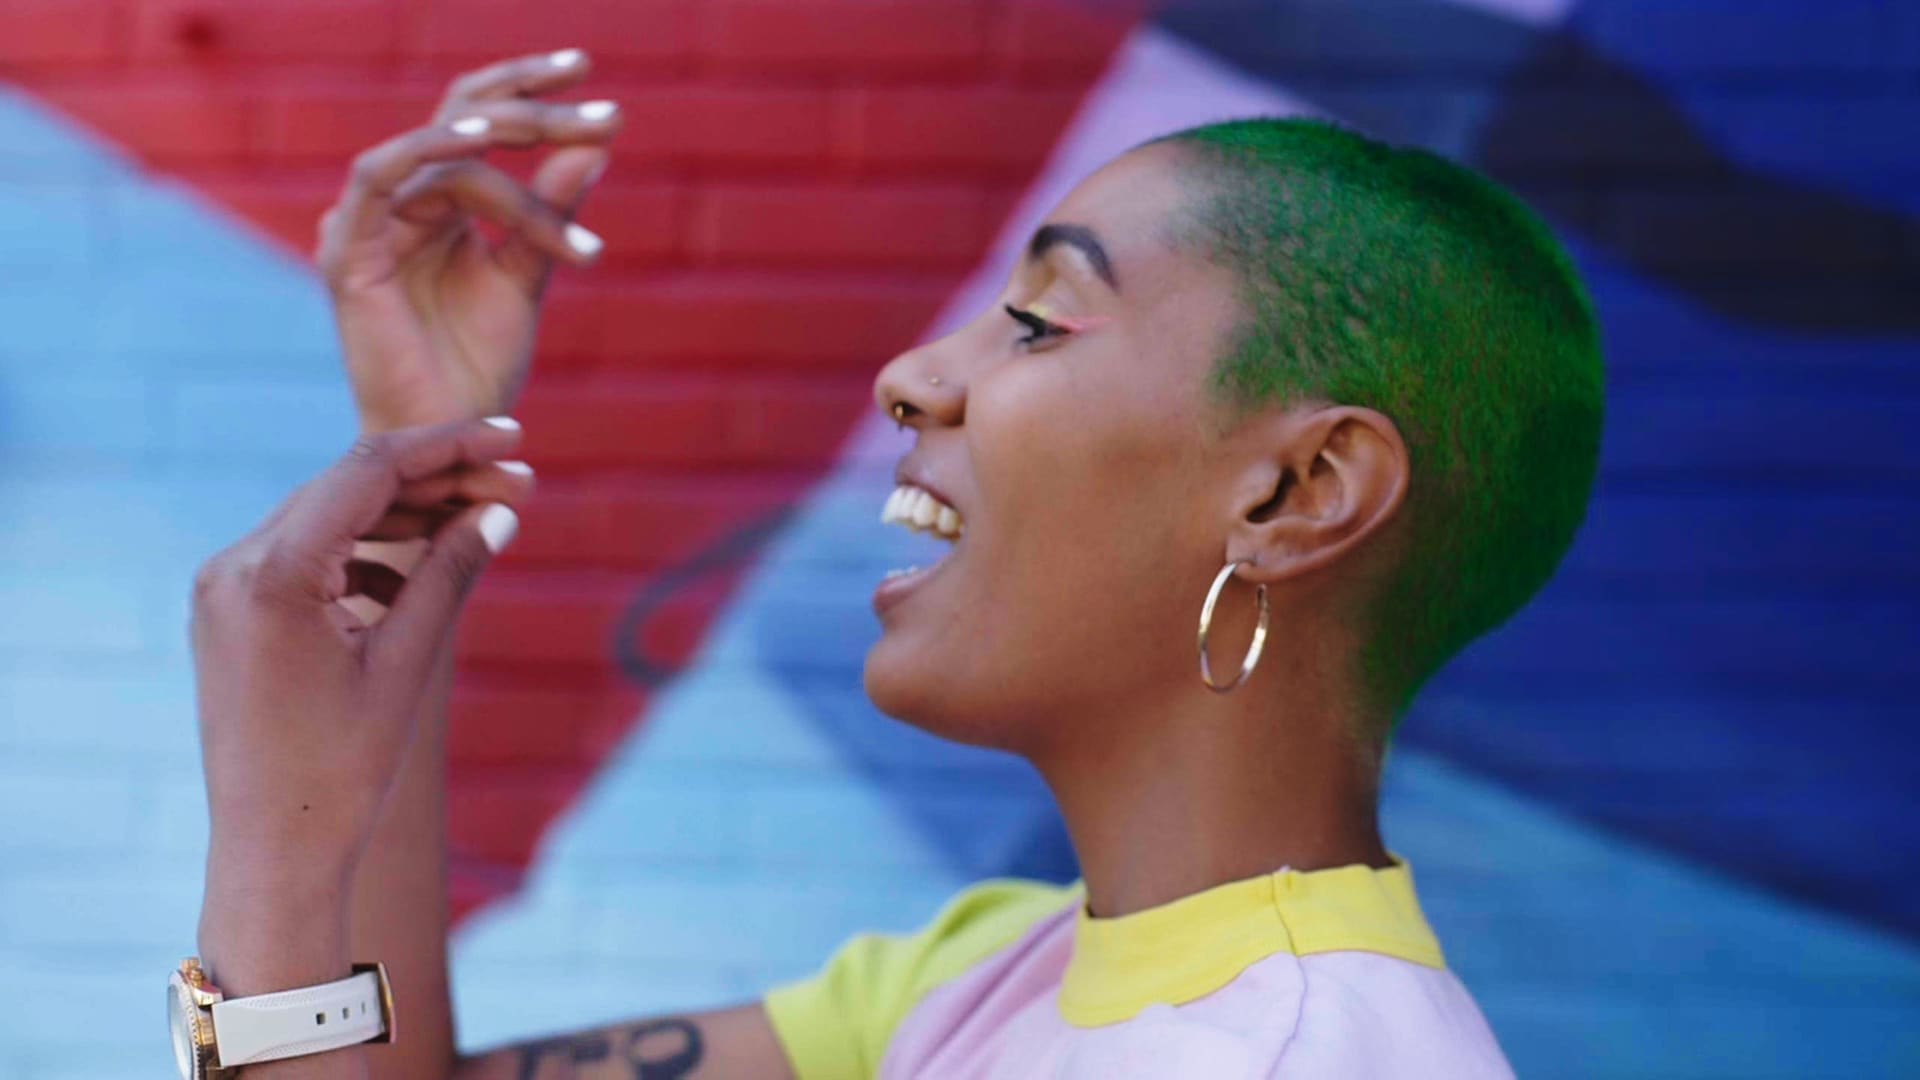 TikTok creator and musician Hannah Chelan inspired Sally Beauty's new marketing campaign. She shared a song about colored hair that went viral on the social media platform.